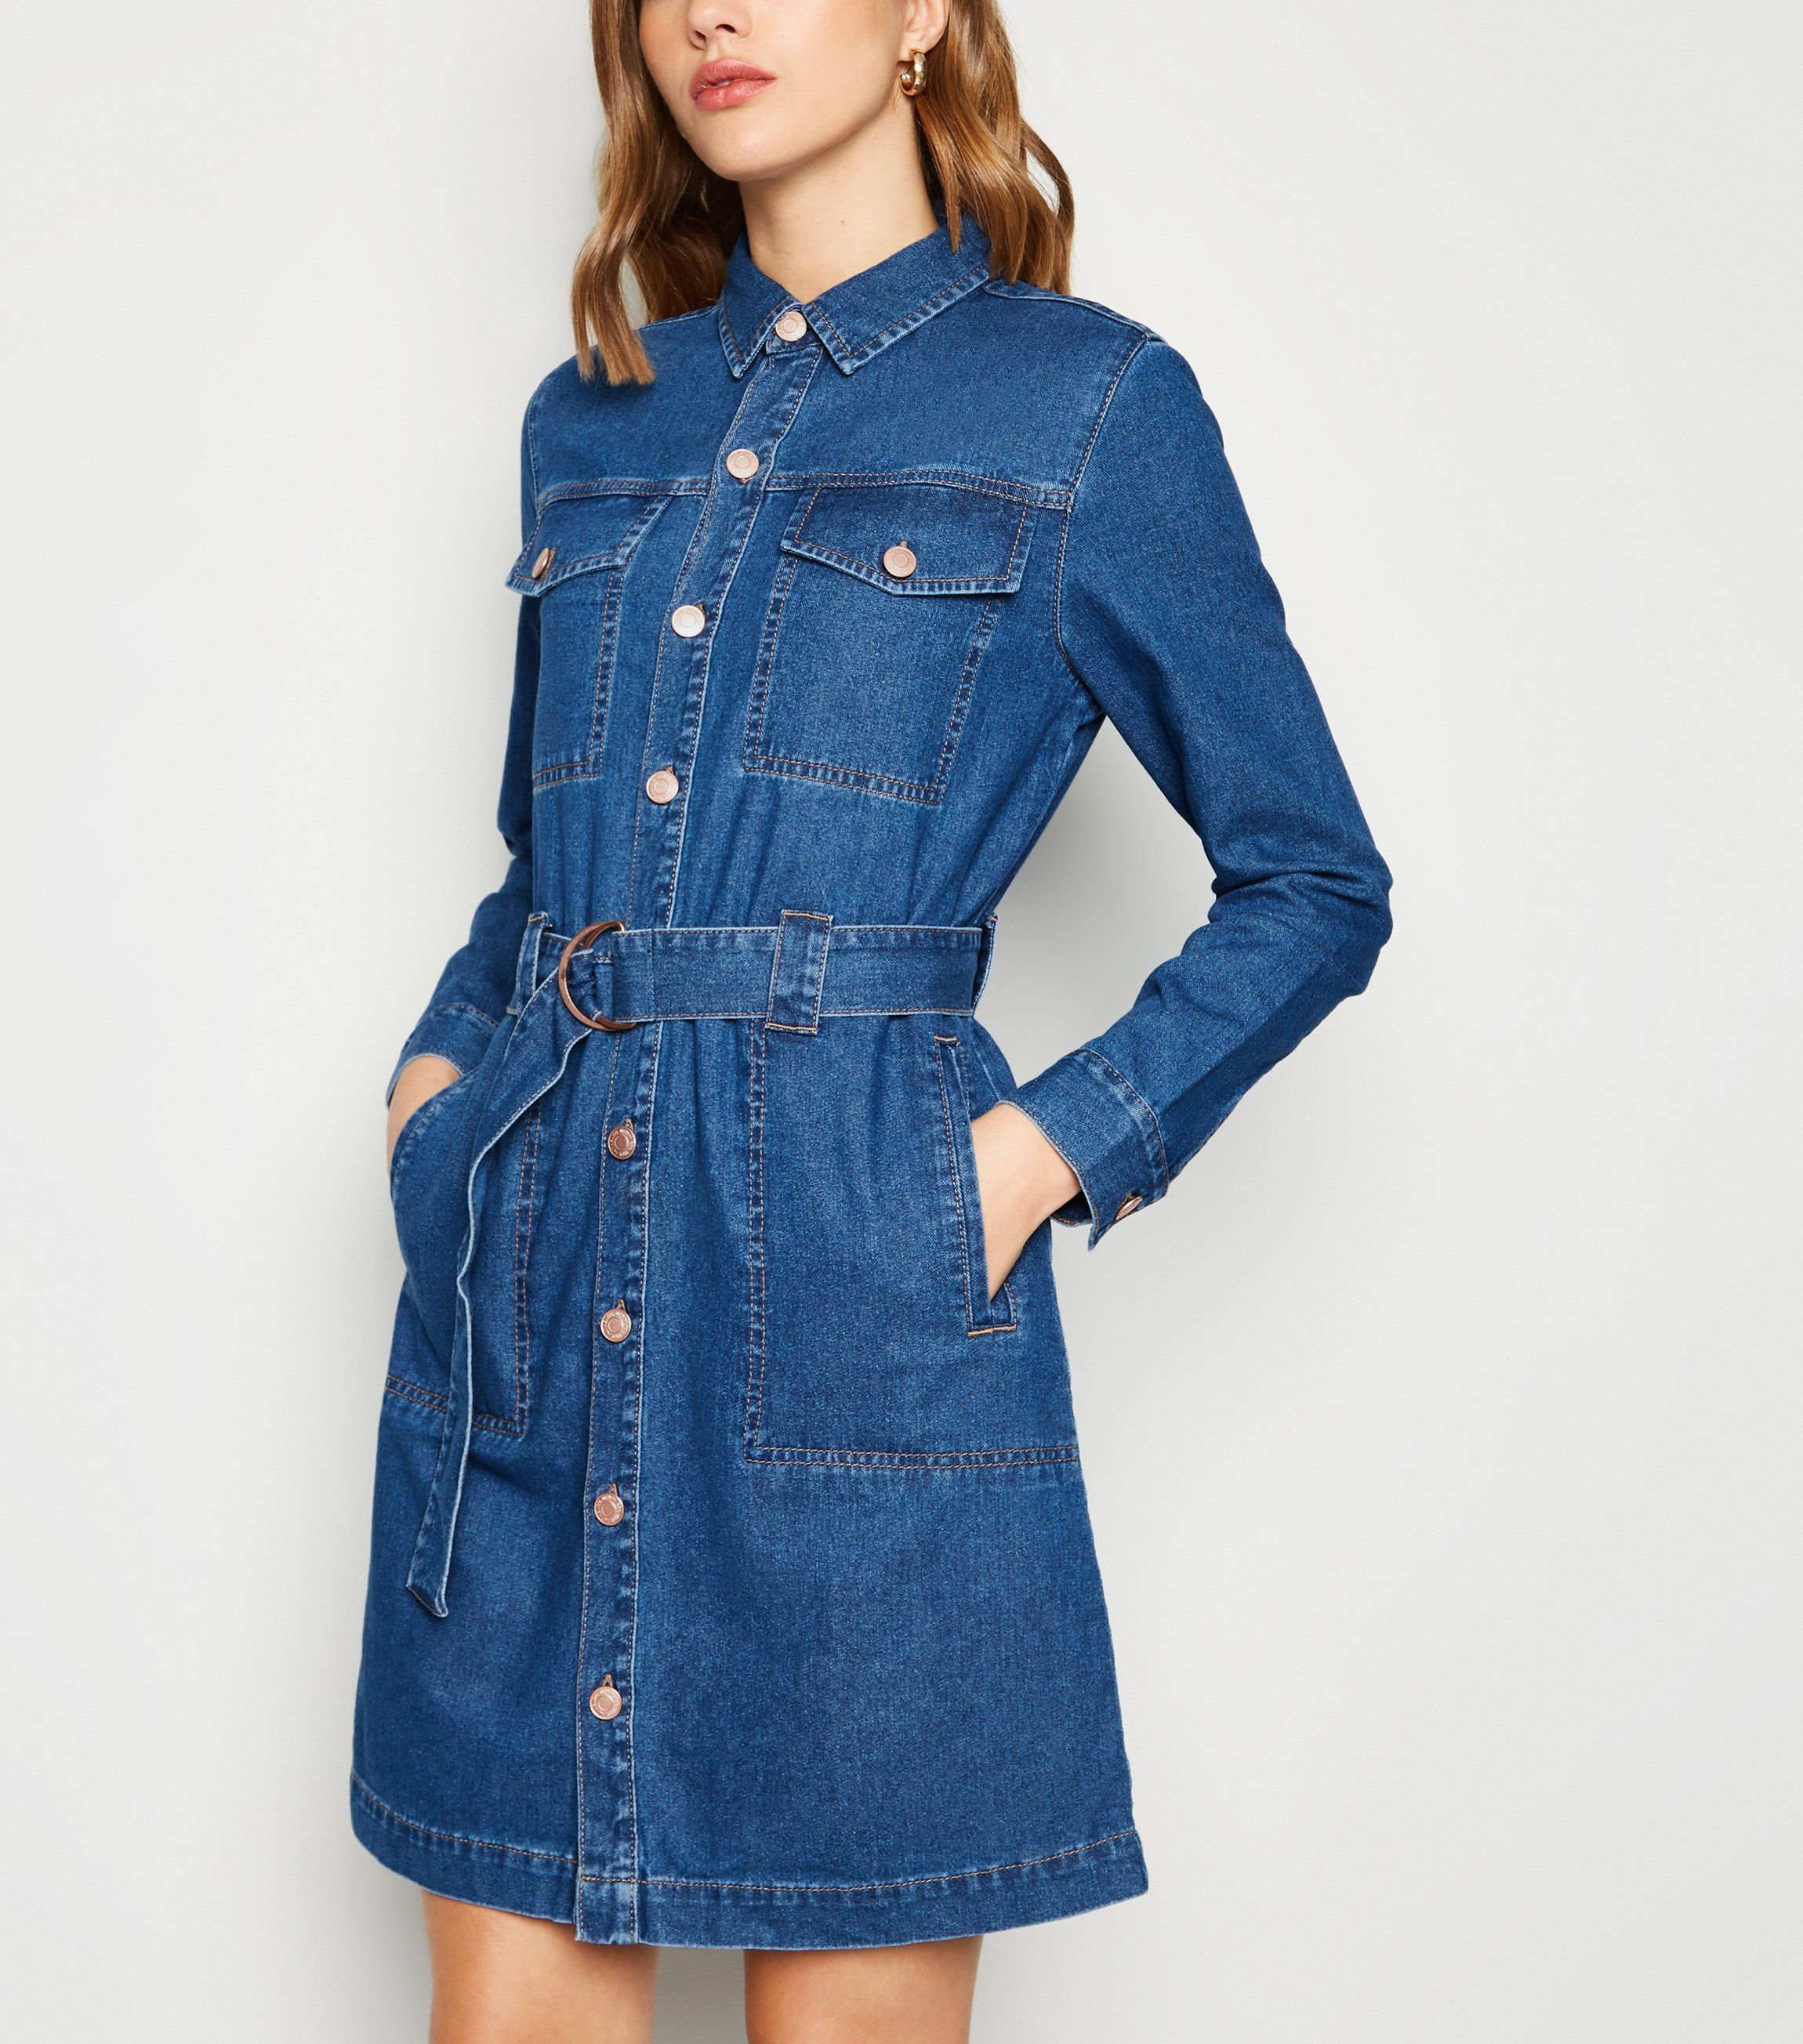 new look blue-denim-tie-waist-shirt-dress